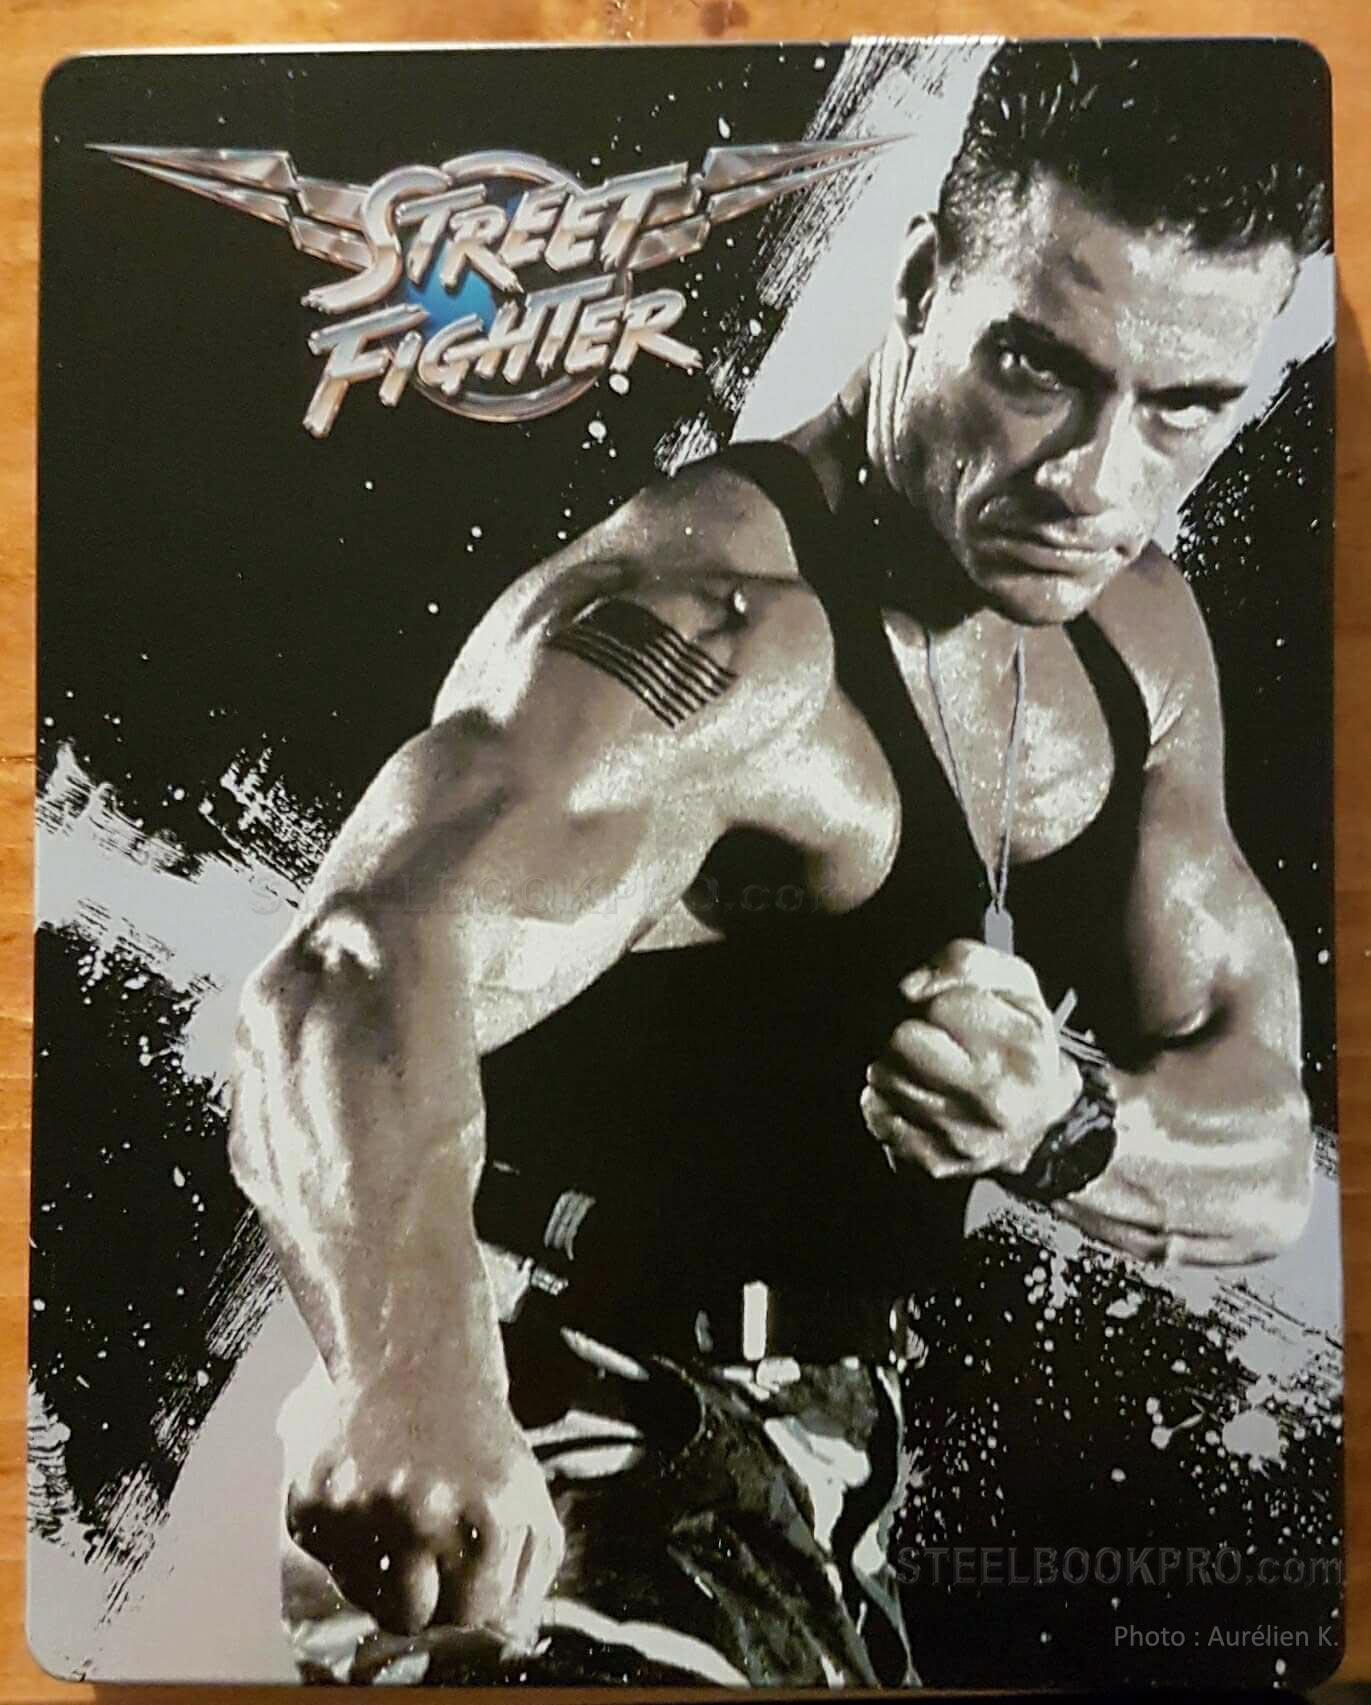 Street-Fighter-steelbook-1